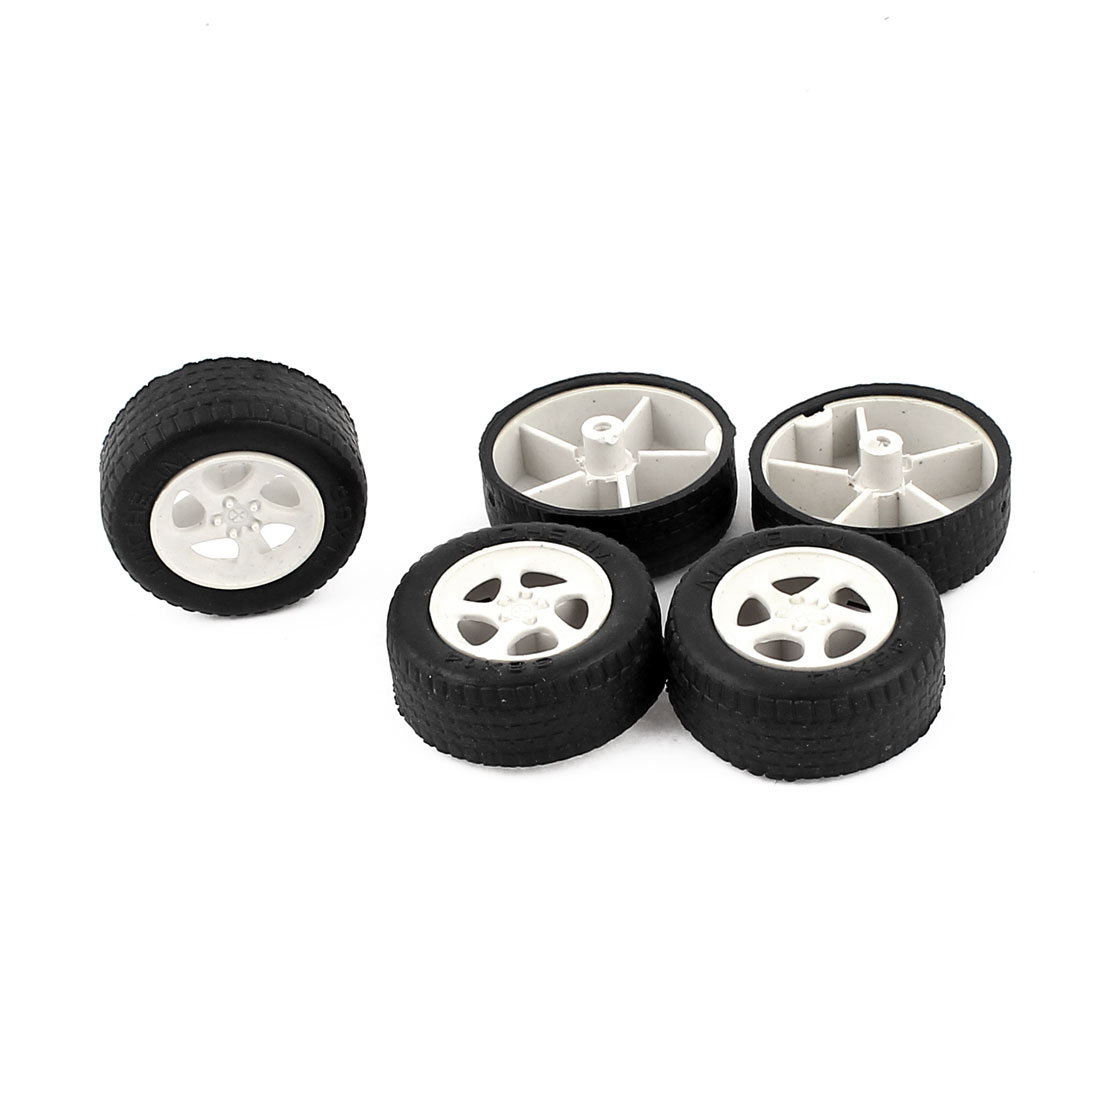 5Pcs 38mm Dia Rubber Roll Plastic Spoke Car Auto Model Toys Wheels